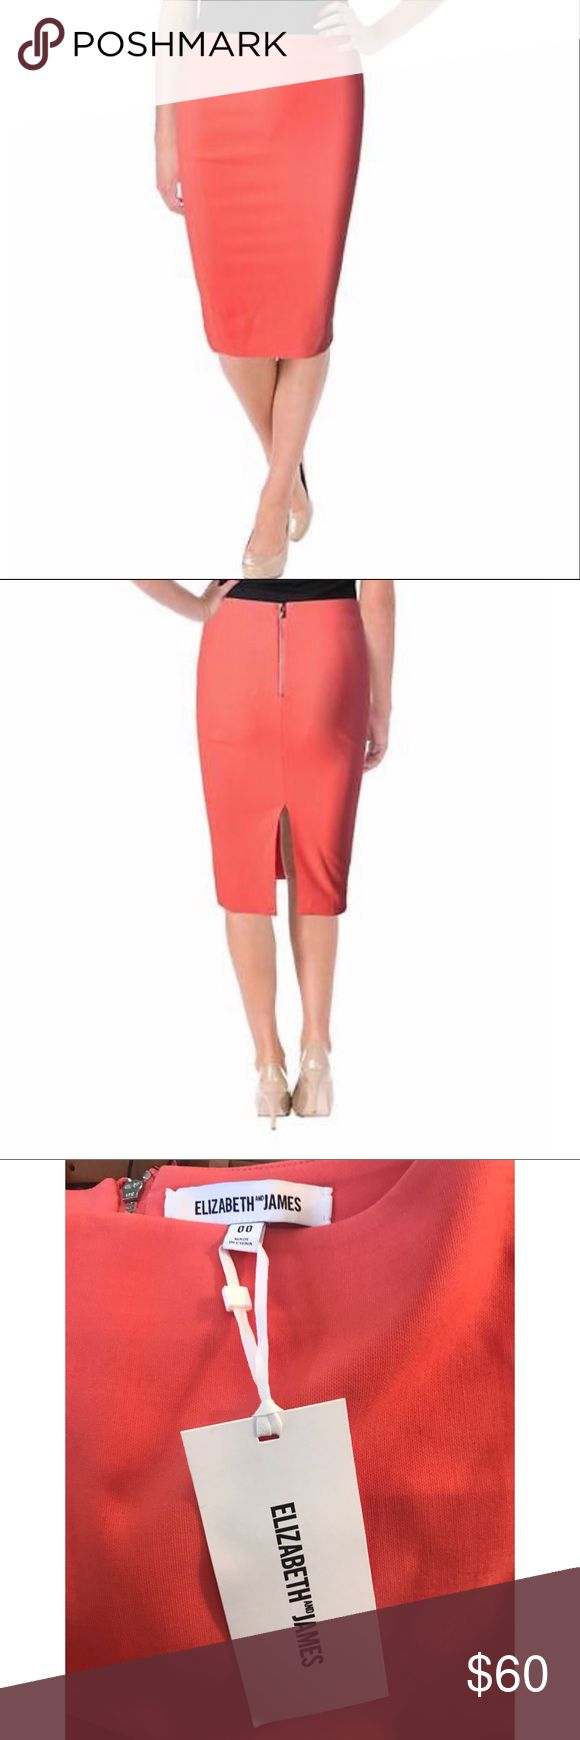 ELIZABETH & JAMES CORAL PENCIL SKIRT BNWT Brand new with tags, size 00.  This is the perfect pencil skirt in a beautiful color. Never worn. Elizabeth and James Skirts Pencil